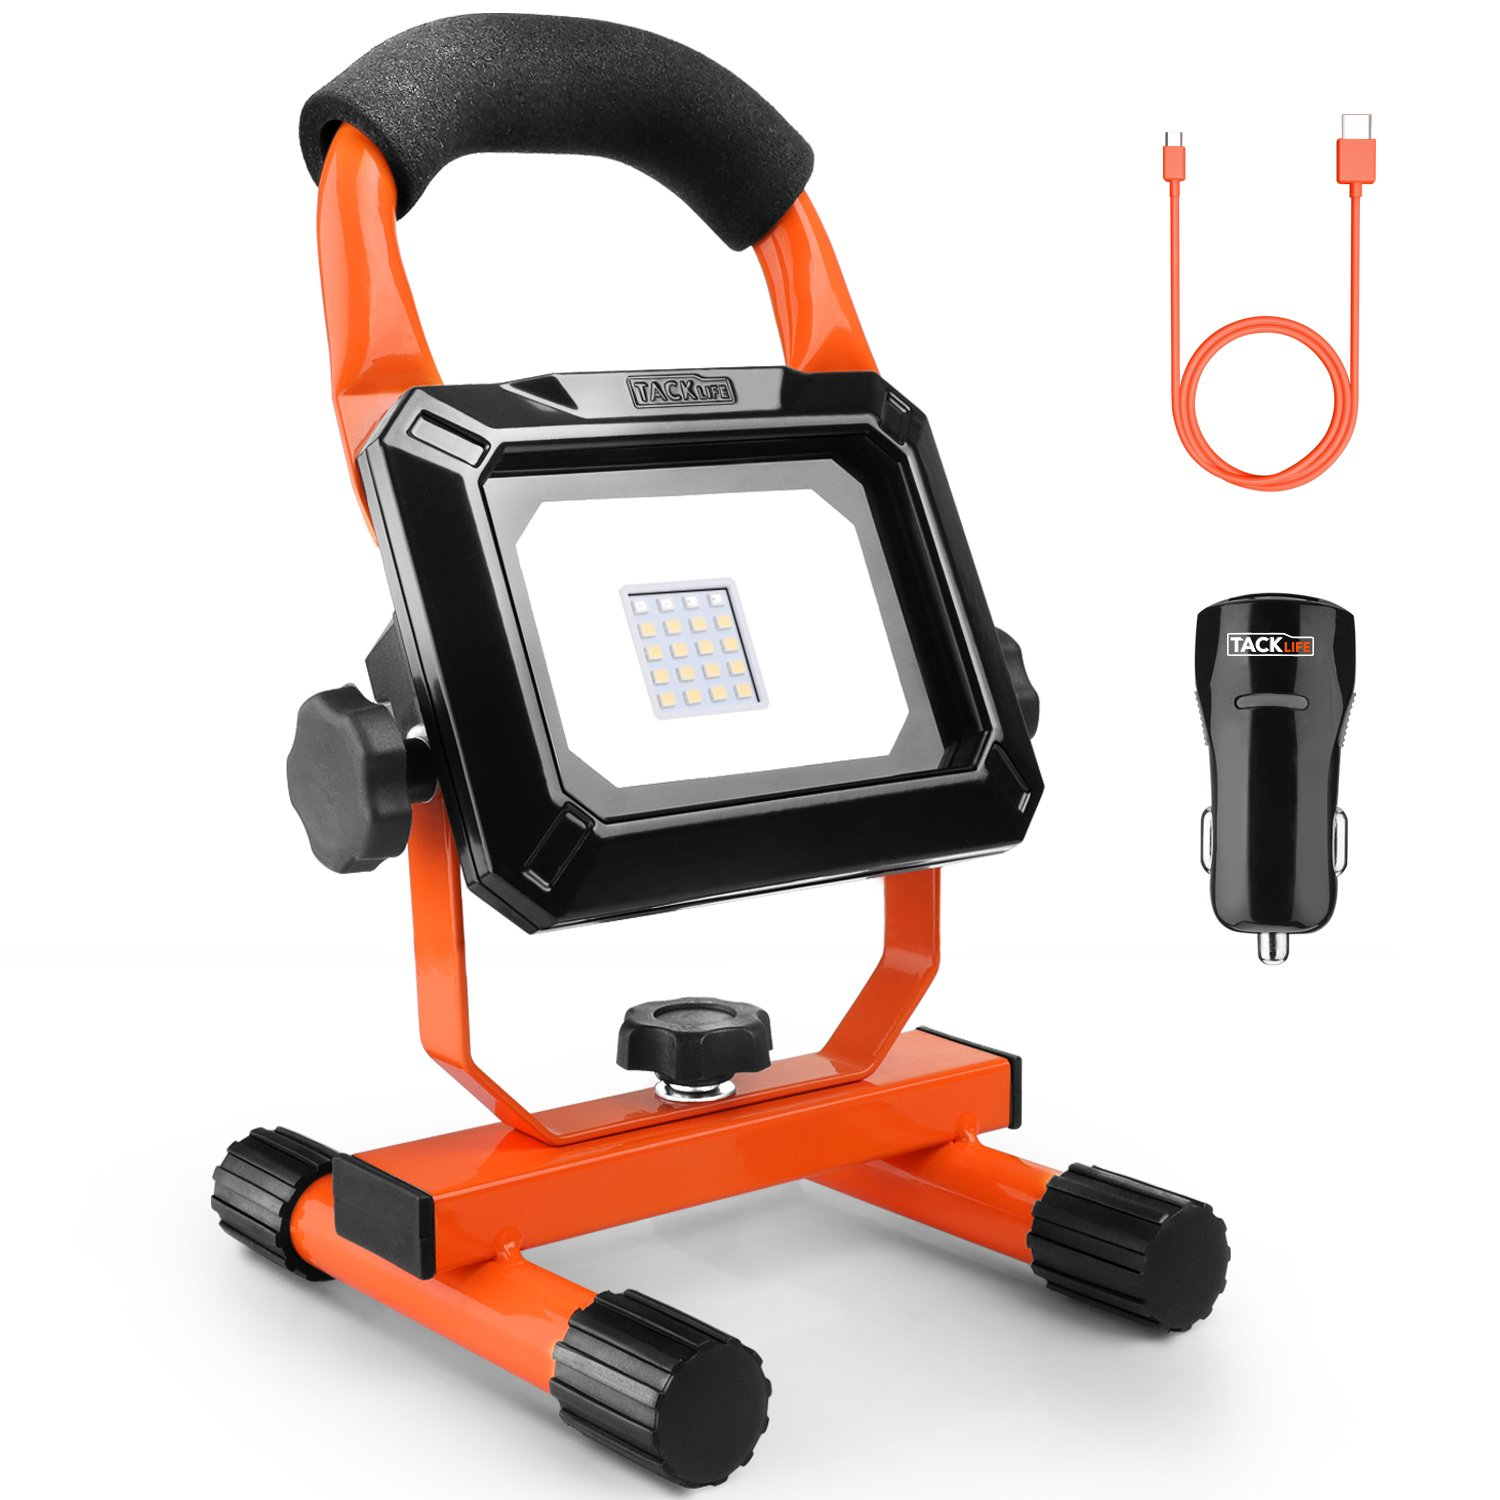 LED Rechargeable Work Light, TACKLIFE 15W Portable Flood Light, Waterproof IP65 Security Emergency Lights for Outdoor Camping, Fishing, Working 6000K, USB Charge and Output for Mobile Device